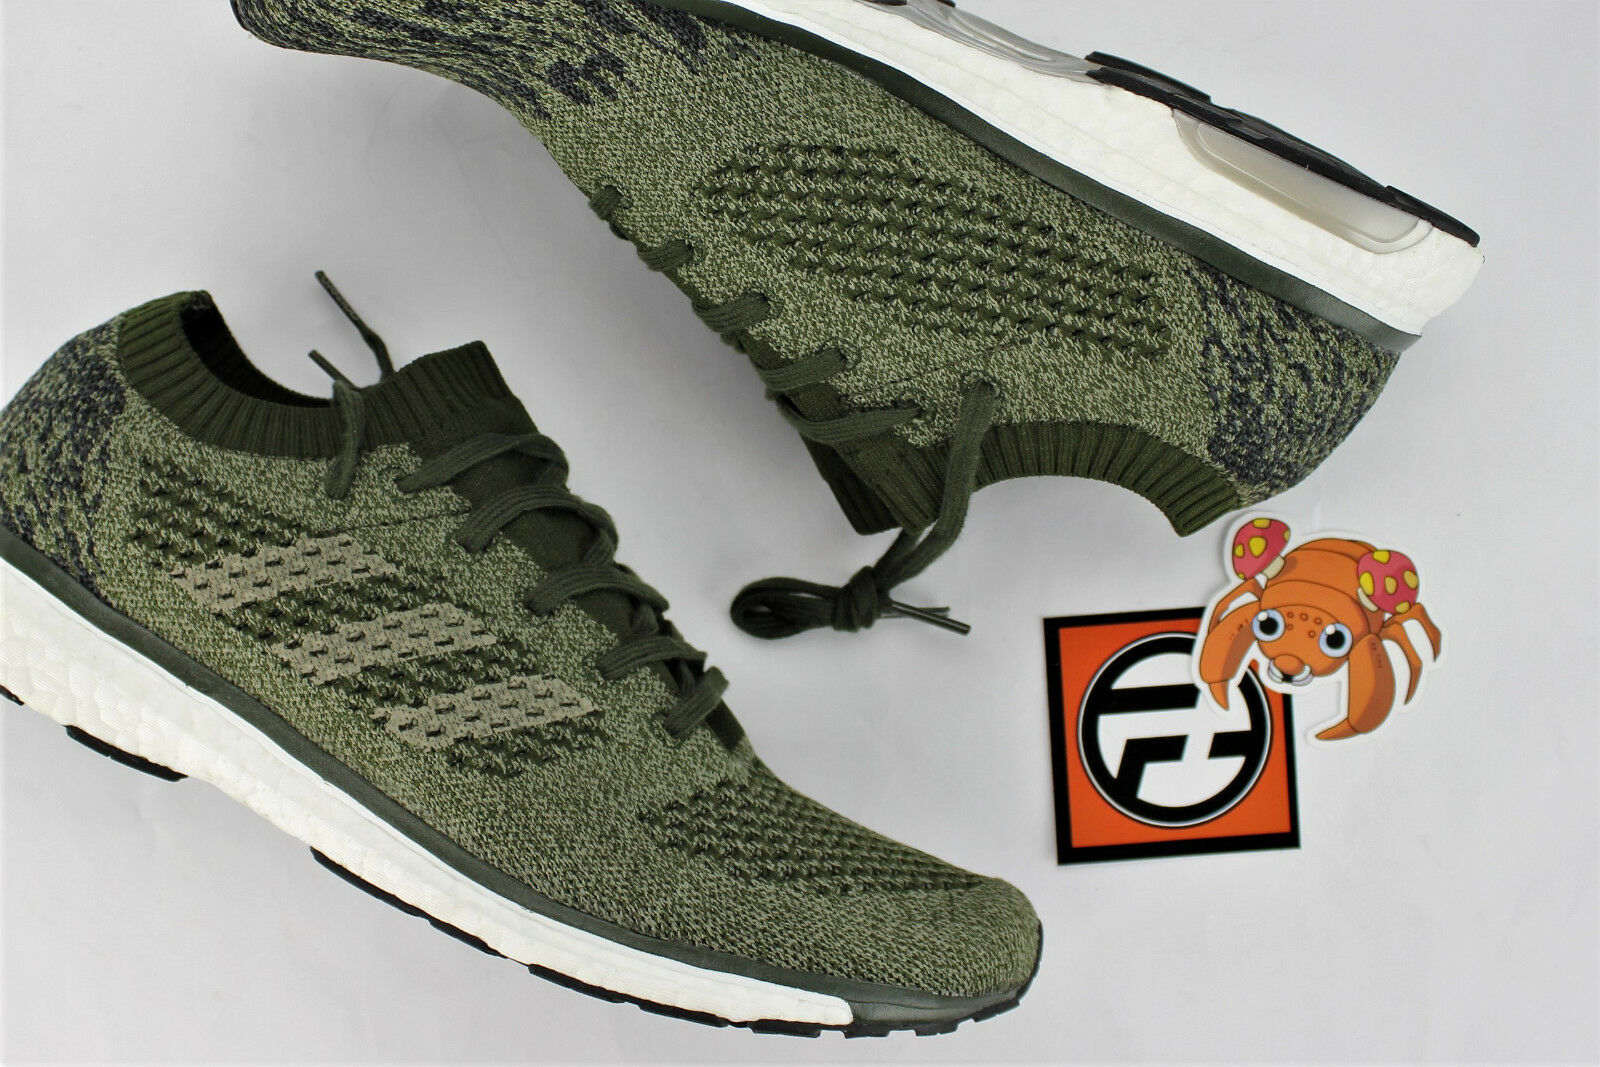 reputable site 393be 3b903 Adidas Adizero Prime LTD LTD LTD Night Cargo Olive Größe 10.5 BA7936 5333c7